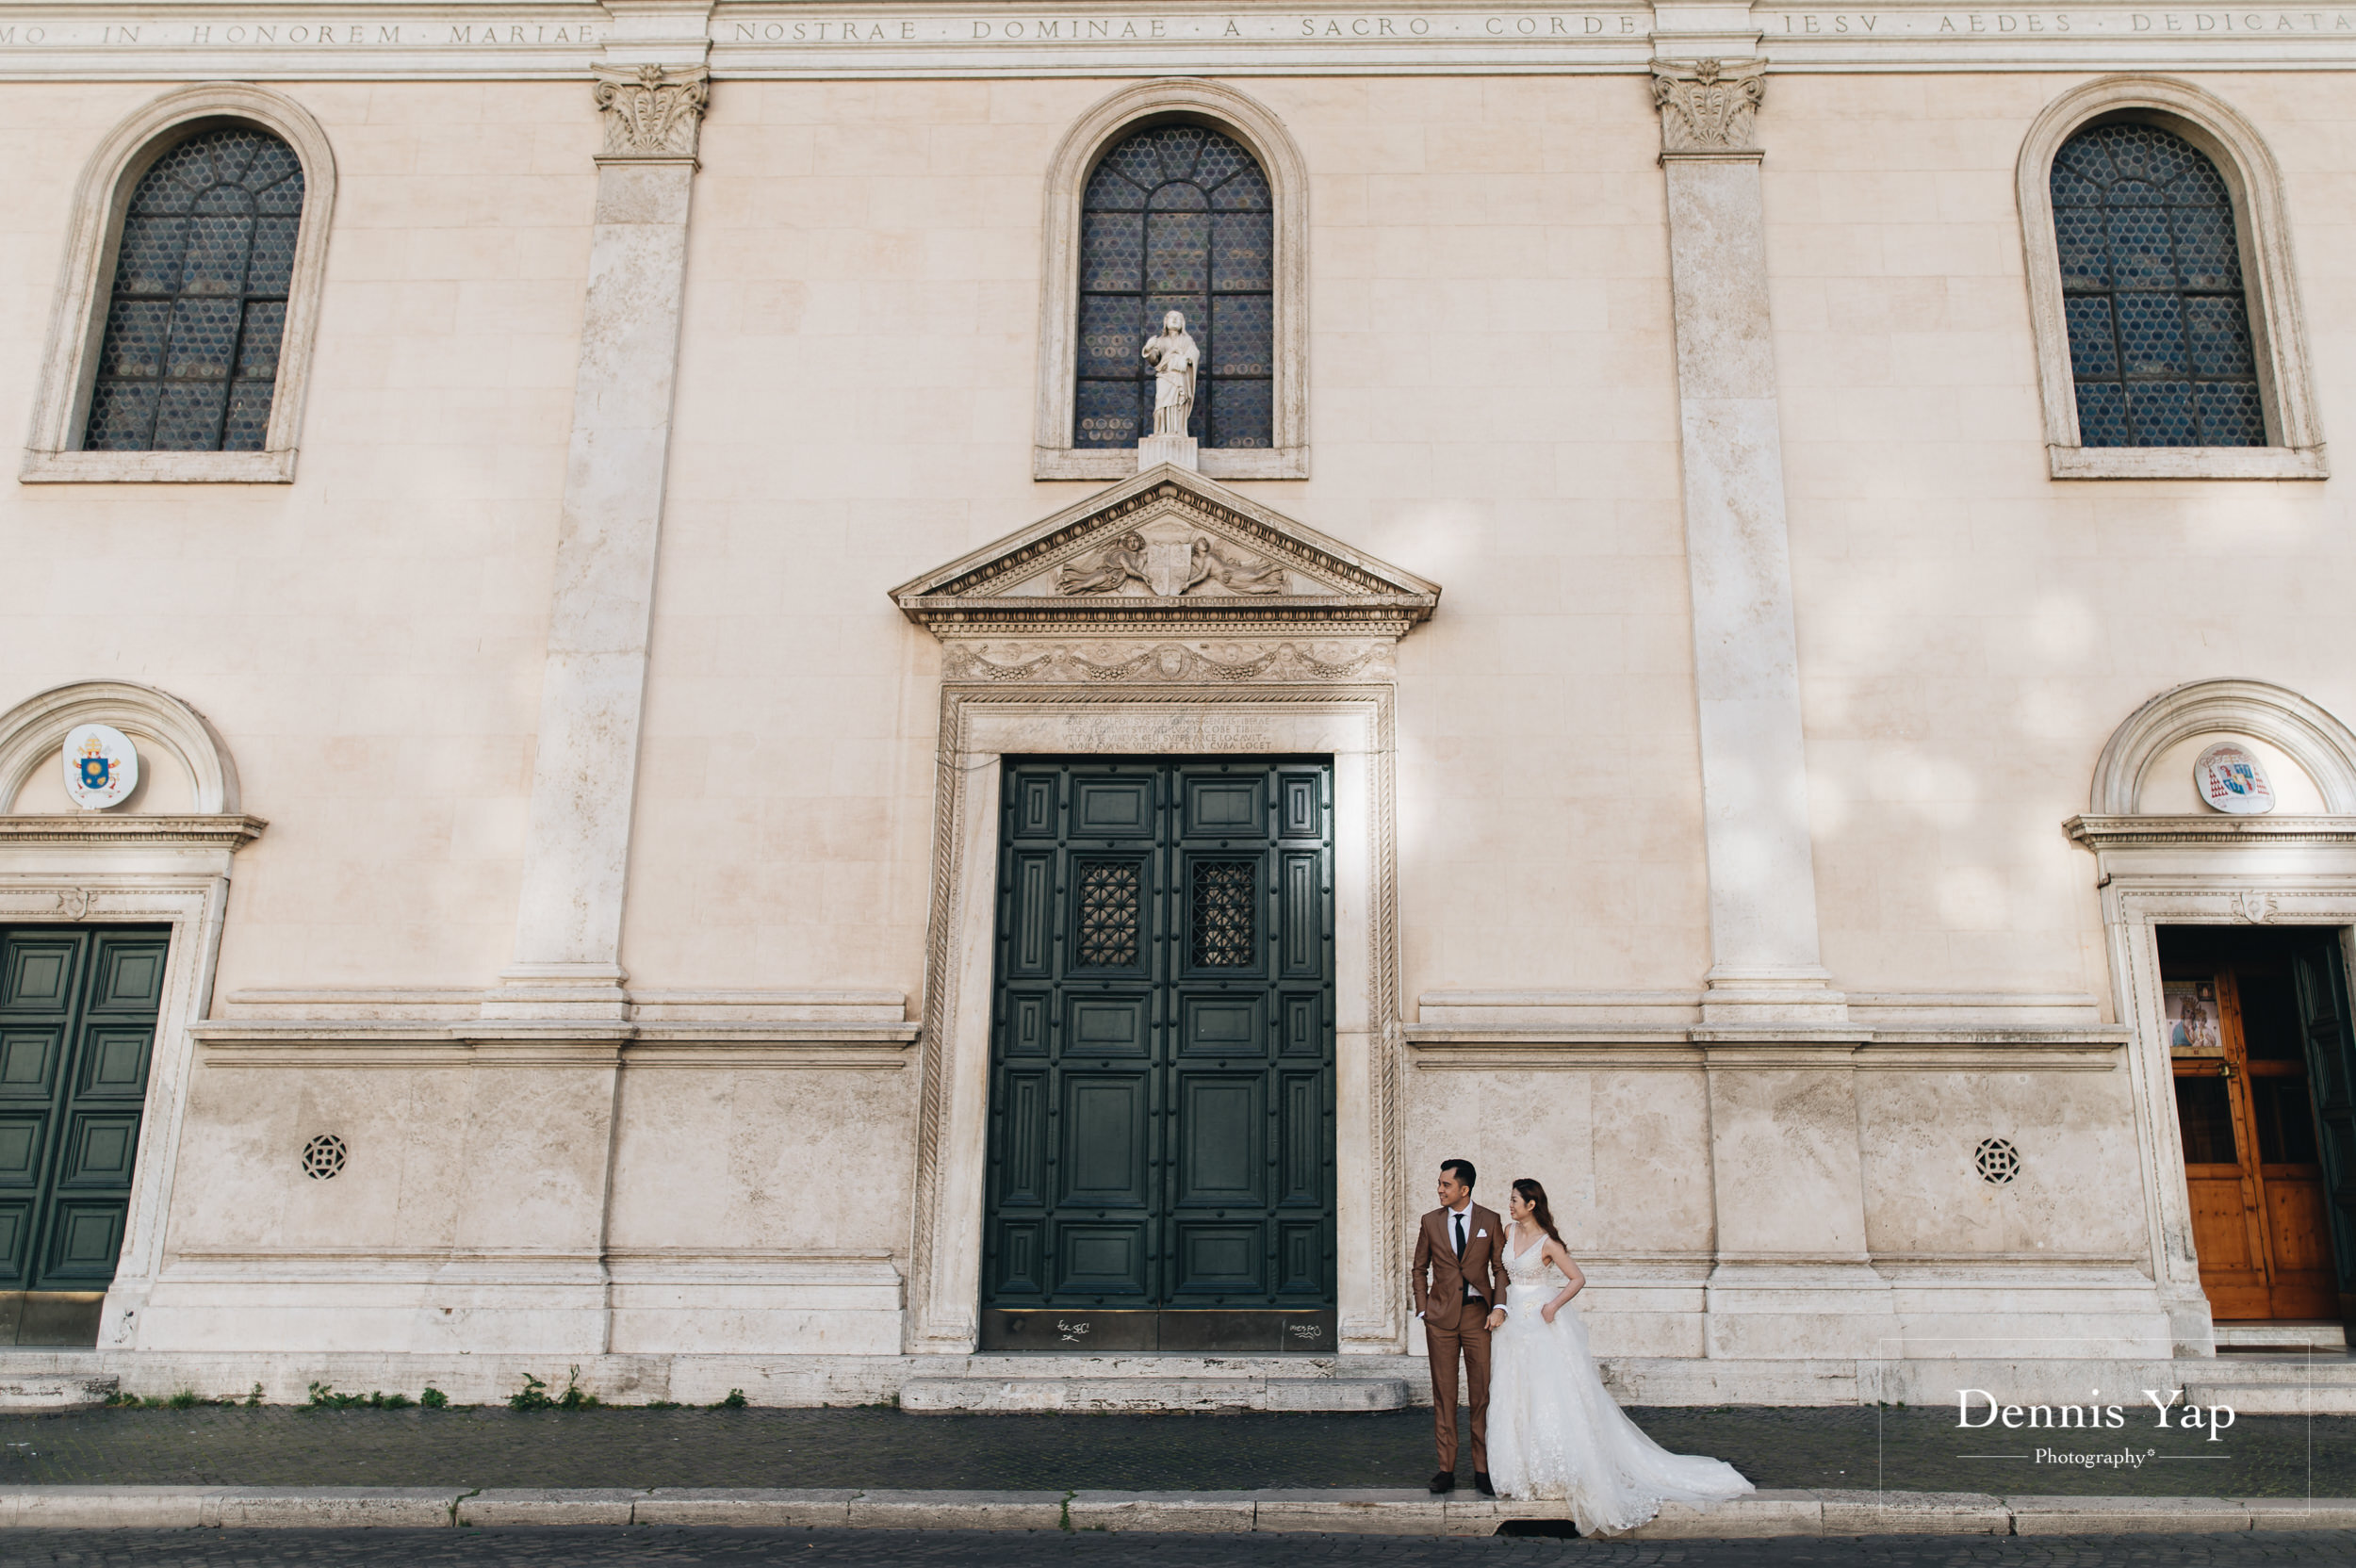 benny alicia pre wedding rome dennis yap photography classic beloved style candid natural-111.jpg